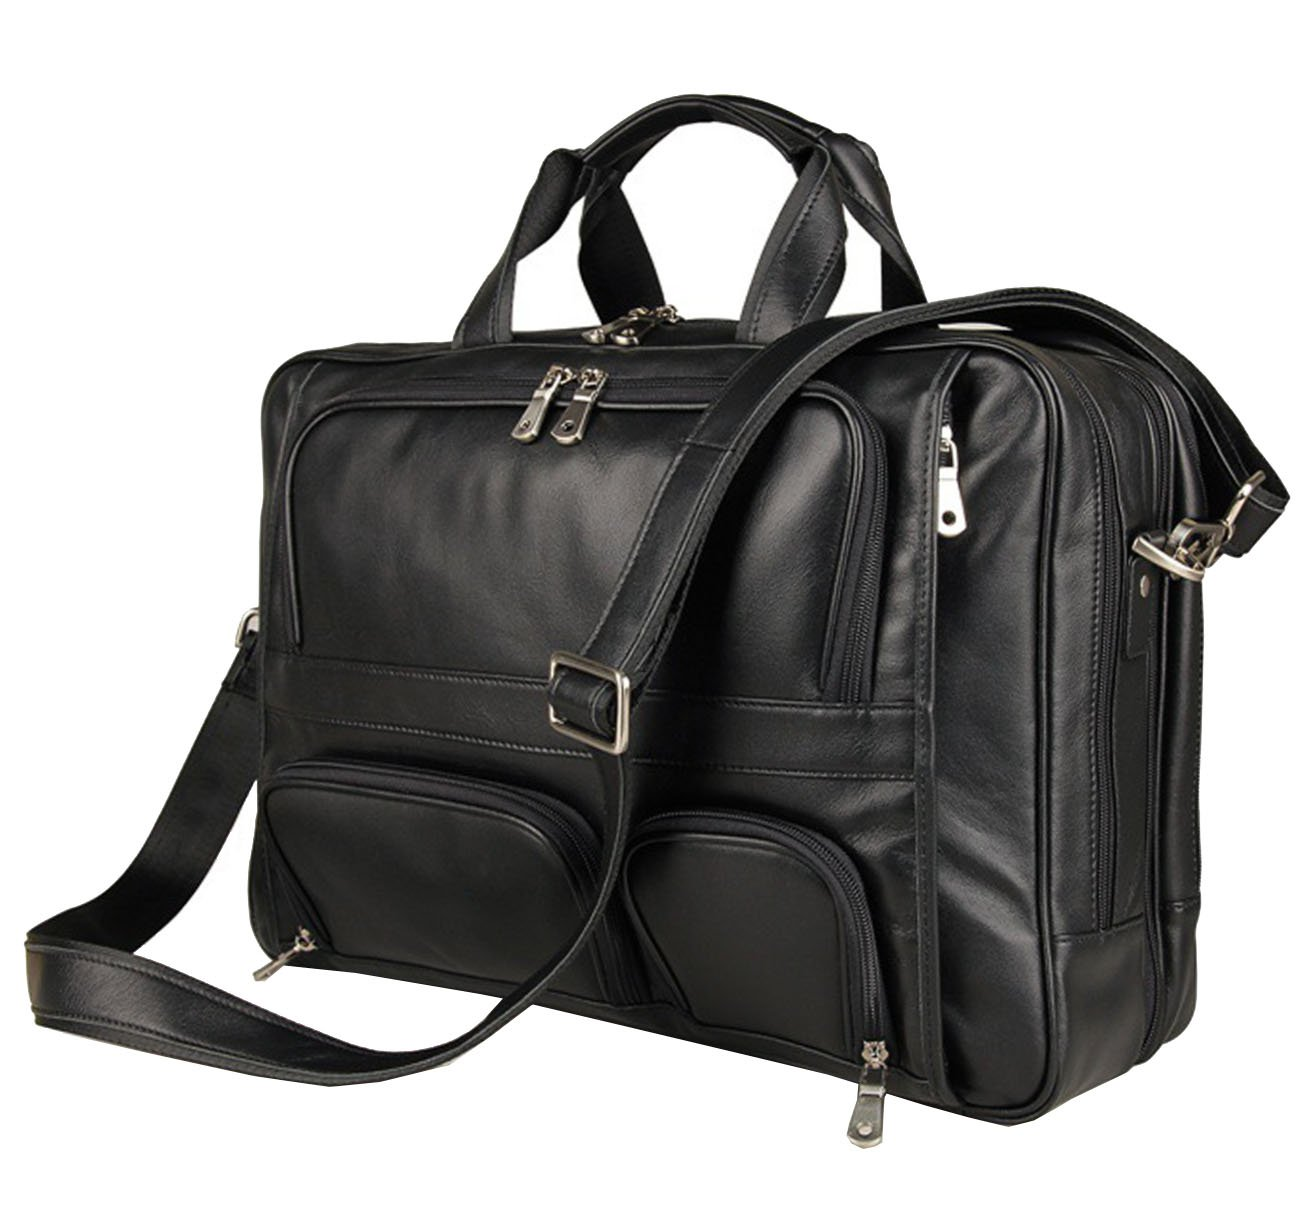 Totes Bag Leather,Berchirly Men Vintage Black Genuine Leather Briefcase 15.6Inches Computer Laptop Office Business Messenger Bag